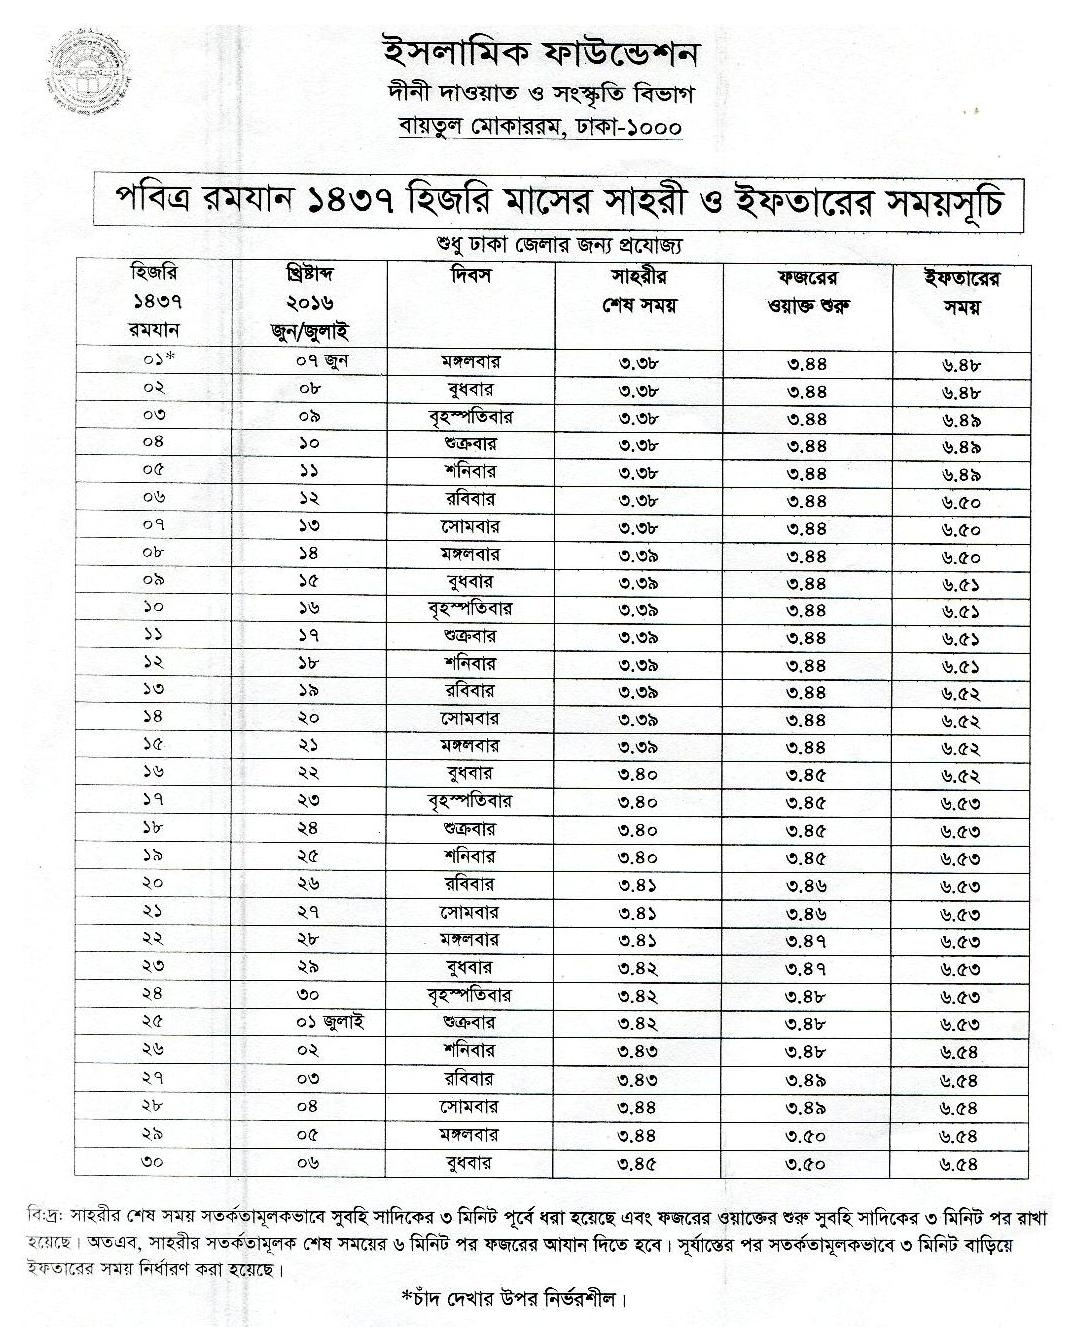 Namaz Sehri Iftar Time In Bangladesh | Template Calendar Printable inside Namaz Sehri Iftar Time In Bangladesh